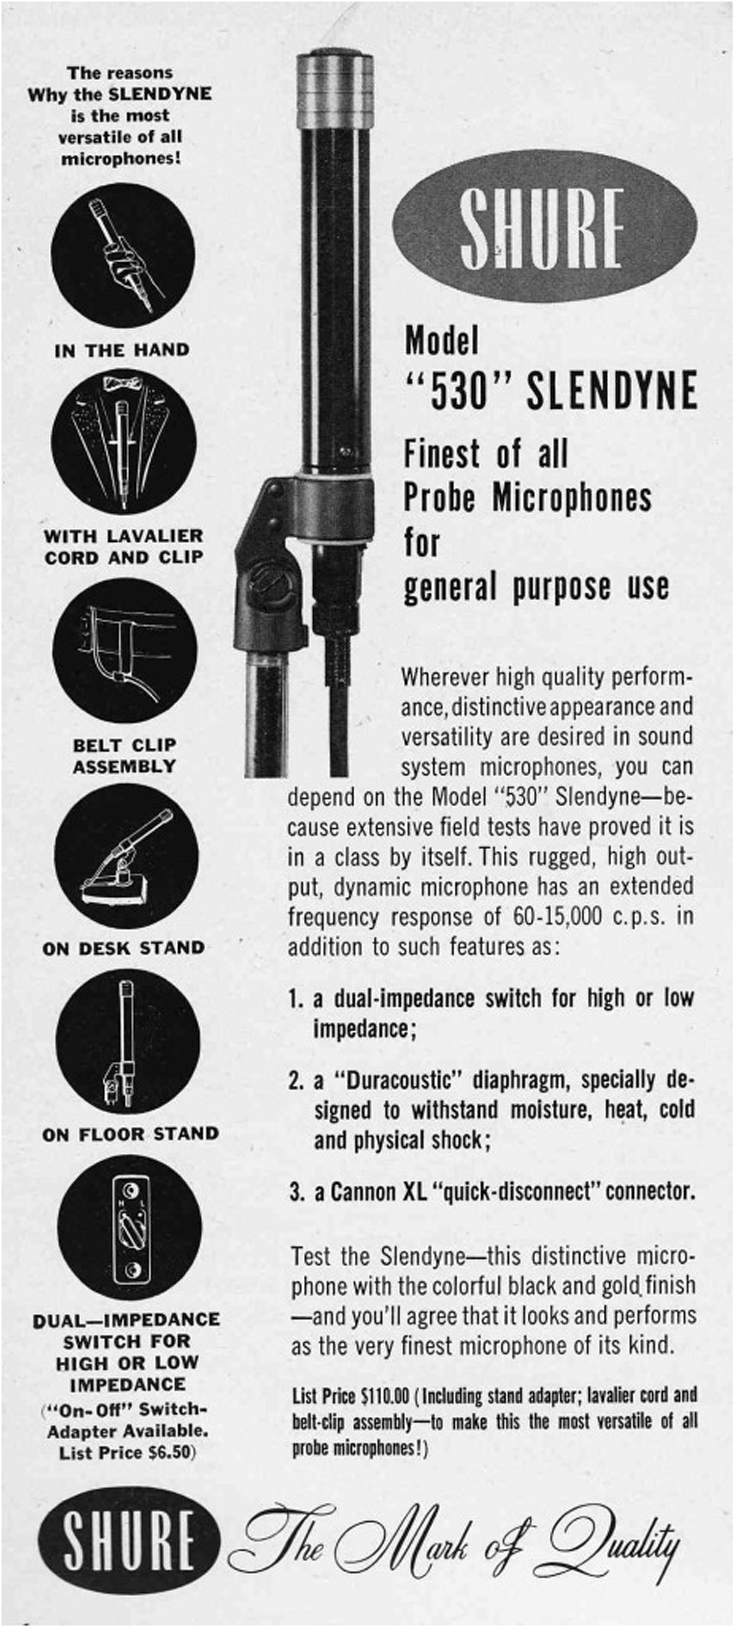 1953 ad for the Shure 530 microphone in the Reel2ReelTexas.com's vintage recording collection